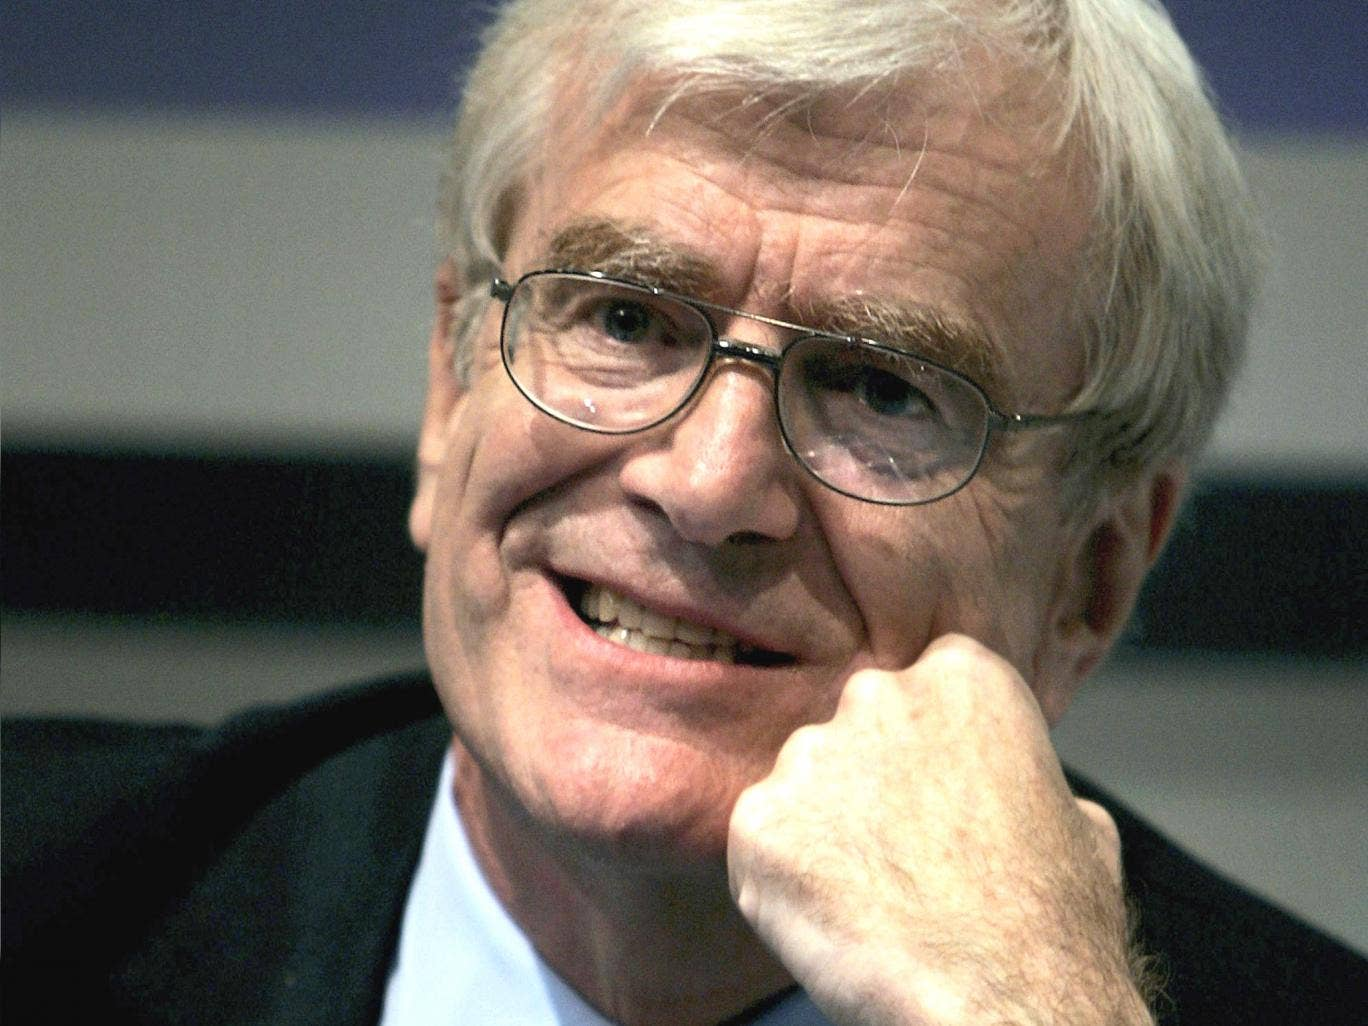 Sir Richard Lambert has been told he can do a lot worse than to follow the example of the CFA Institute